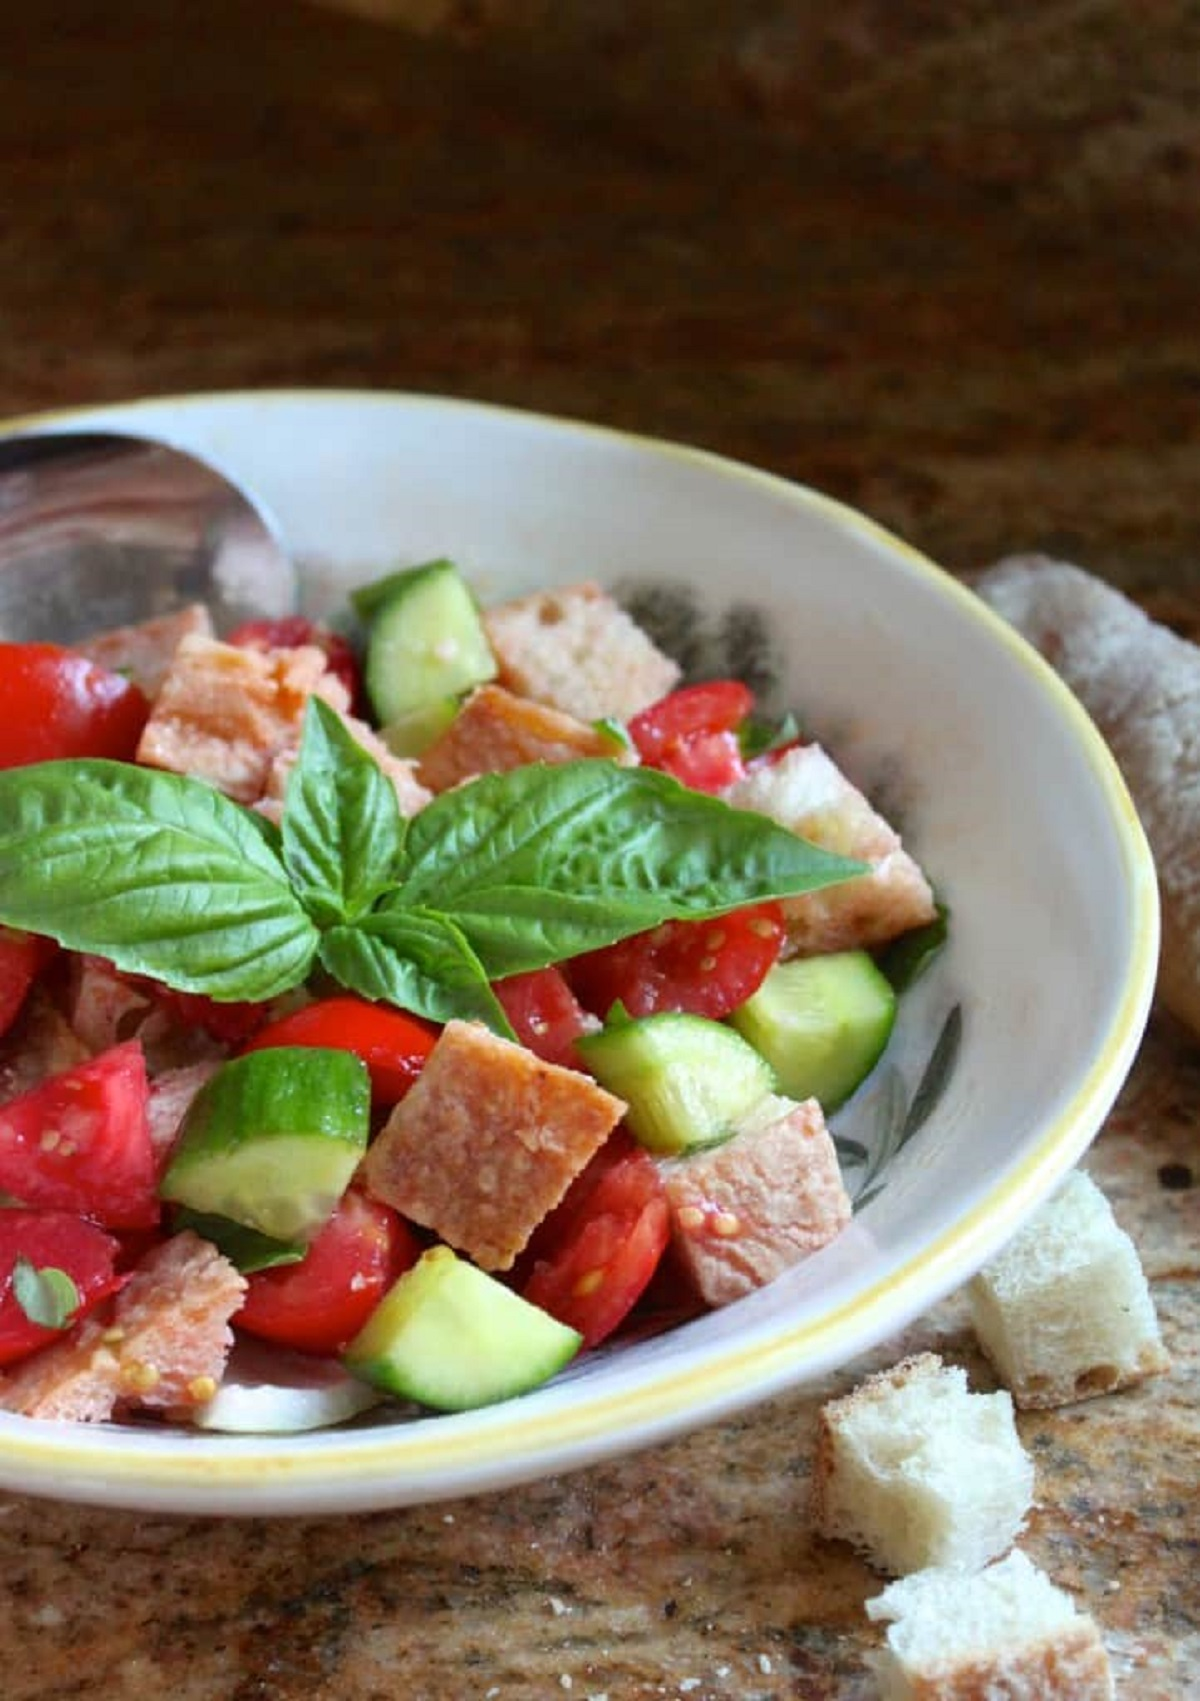 Panzanella, Italian bread and tomato salad in a white bowl garnished with fresh basil leaves.